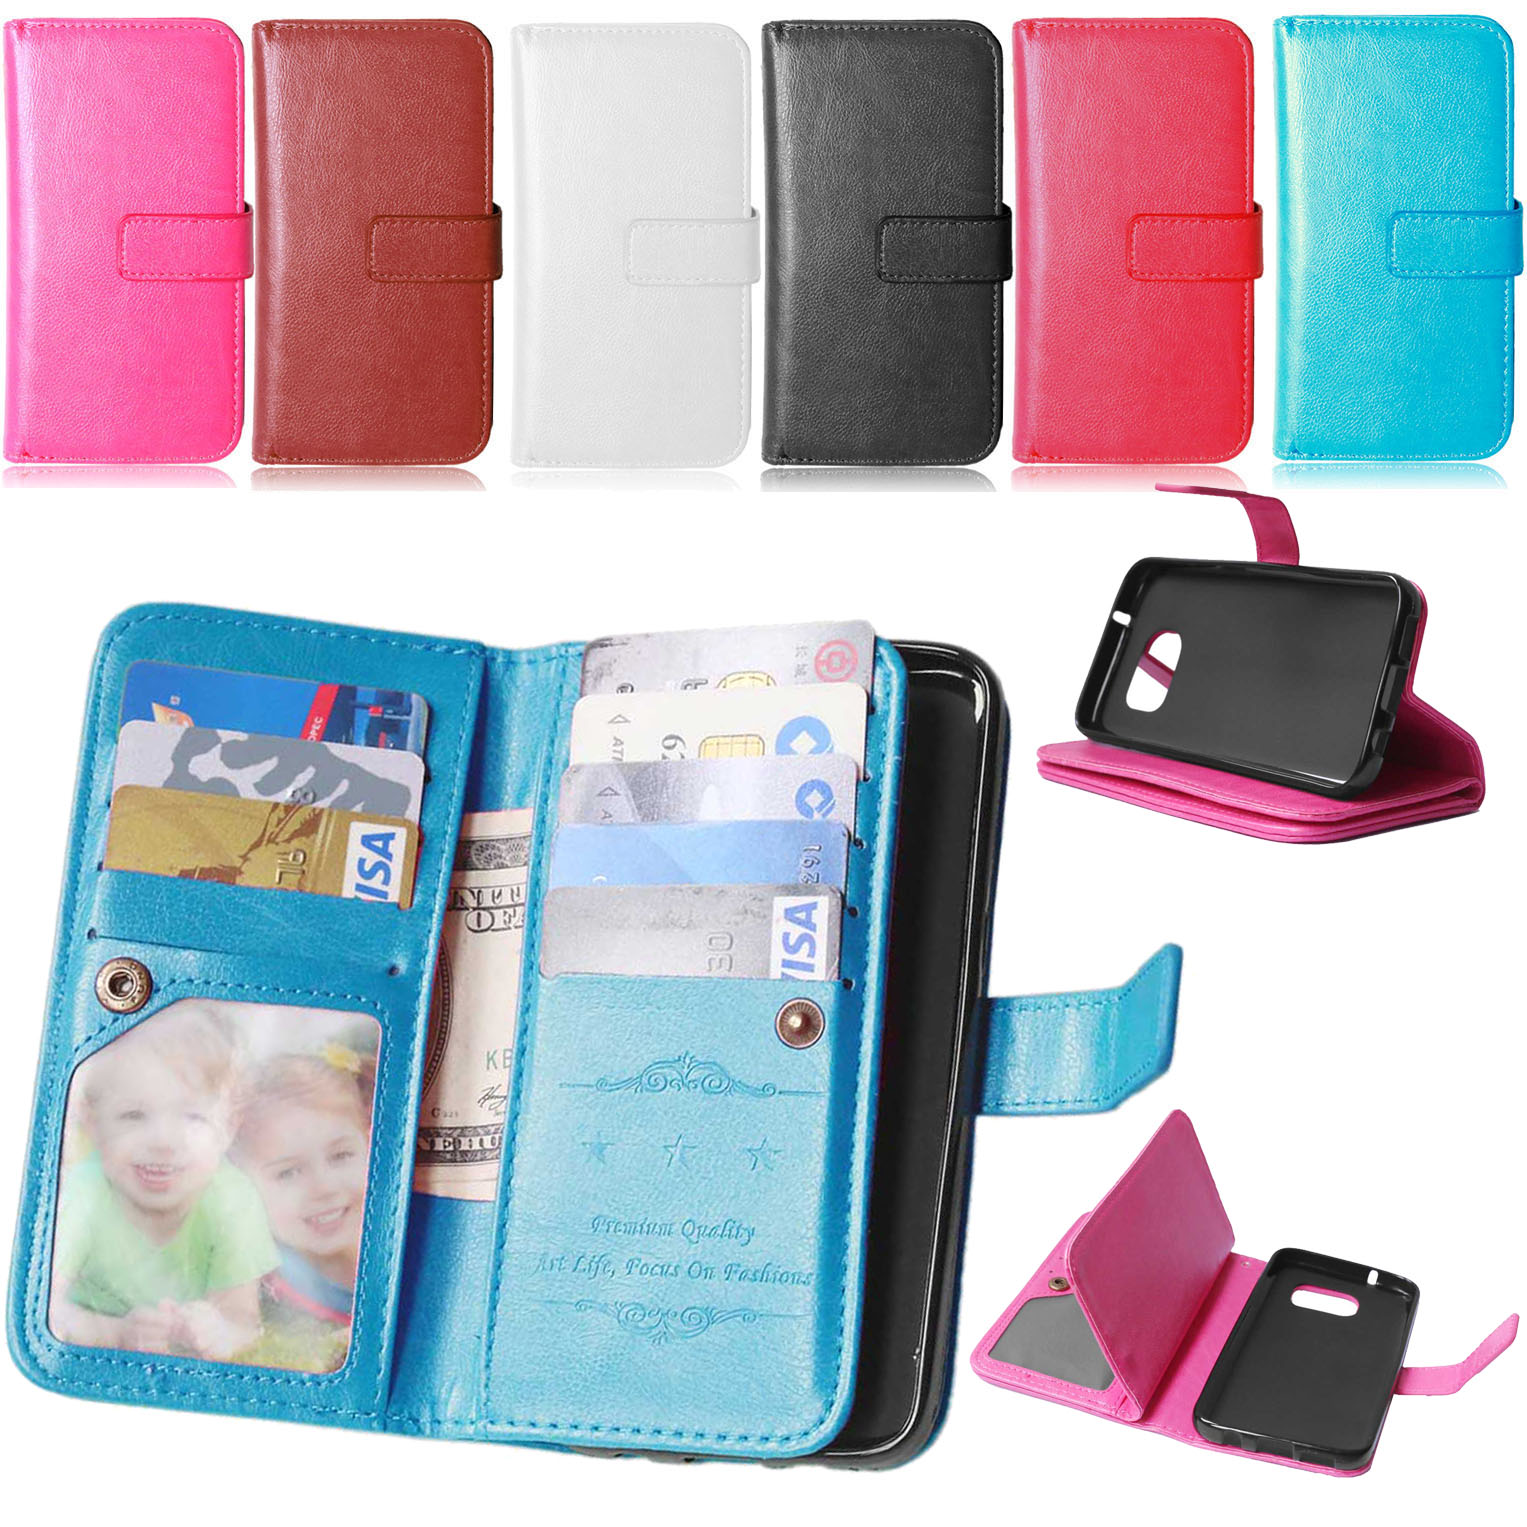 <font><b>S7</b></font> <font><b>Edge</b></font> Cover Luxury Wallet <font><b>Flip</b></font> PU Leather <font><b>Case</b></font> for Samsung Galaxy <font><b>S7</b></font> <font><b>Edge</b></font>/G9350/G935A <font><b>Phone</b></font> <font><b>Case</b></font> With Card Holder Stand Bag